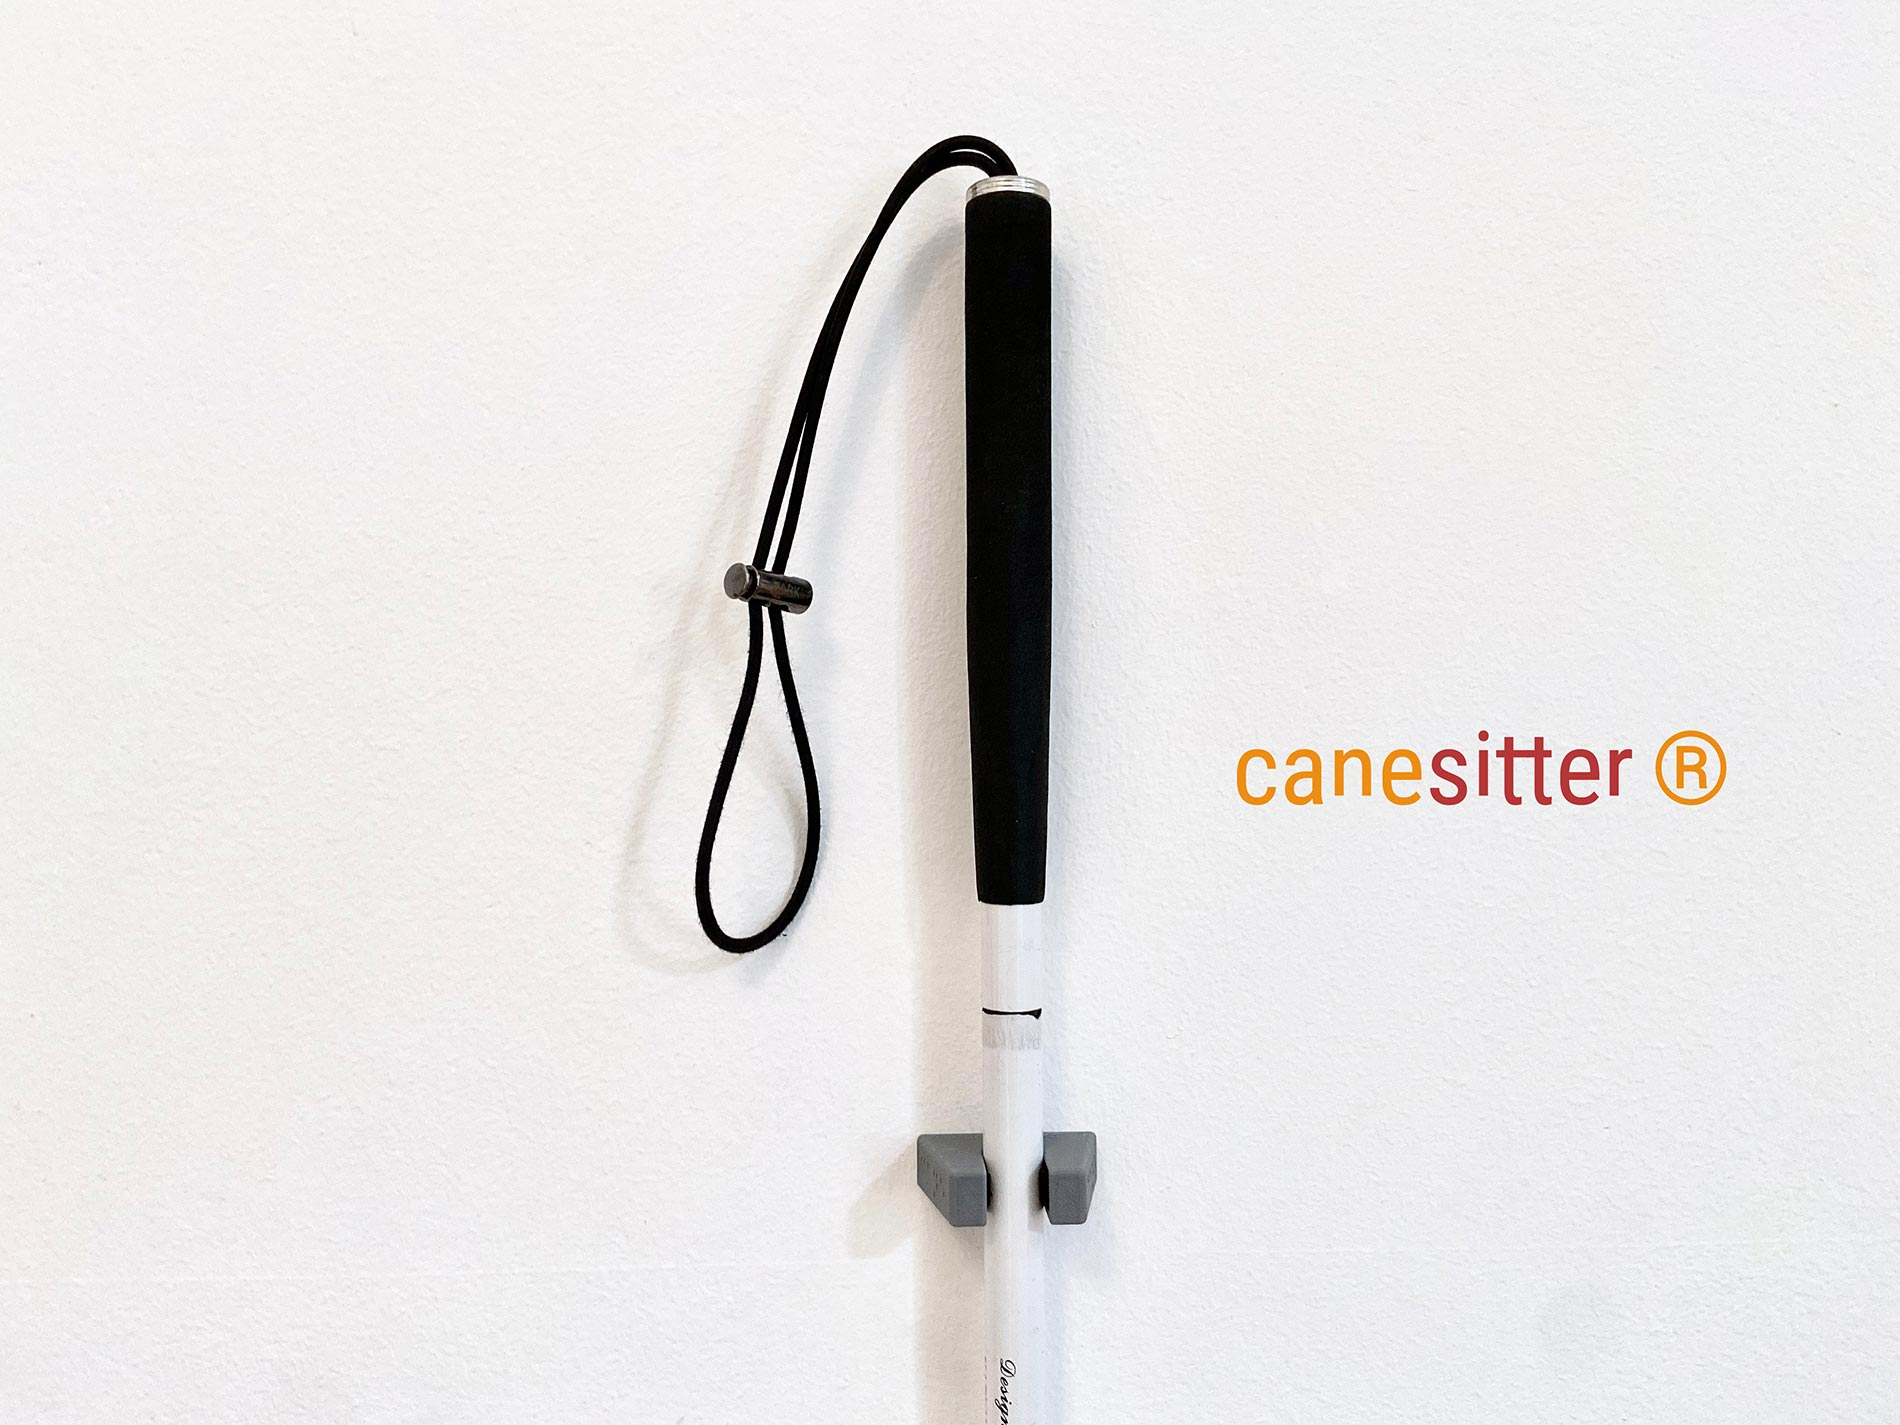 canesitter - the white cane holder